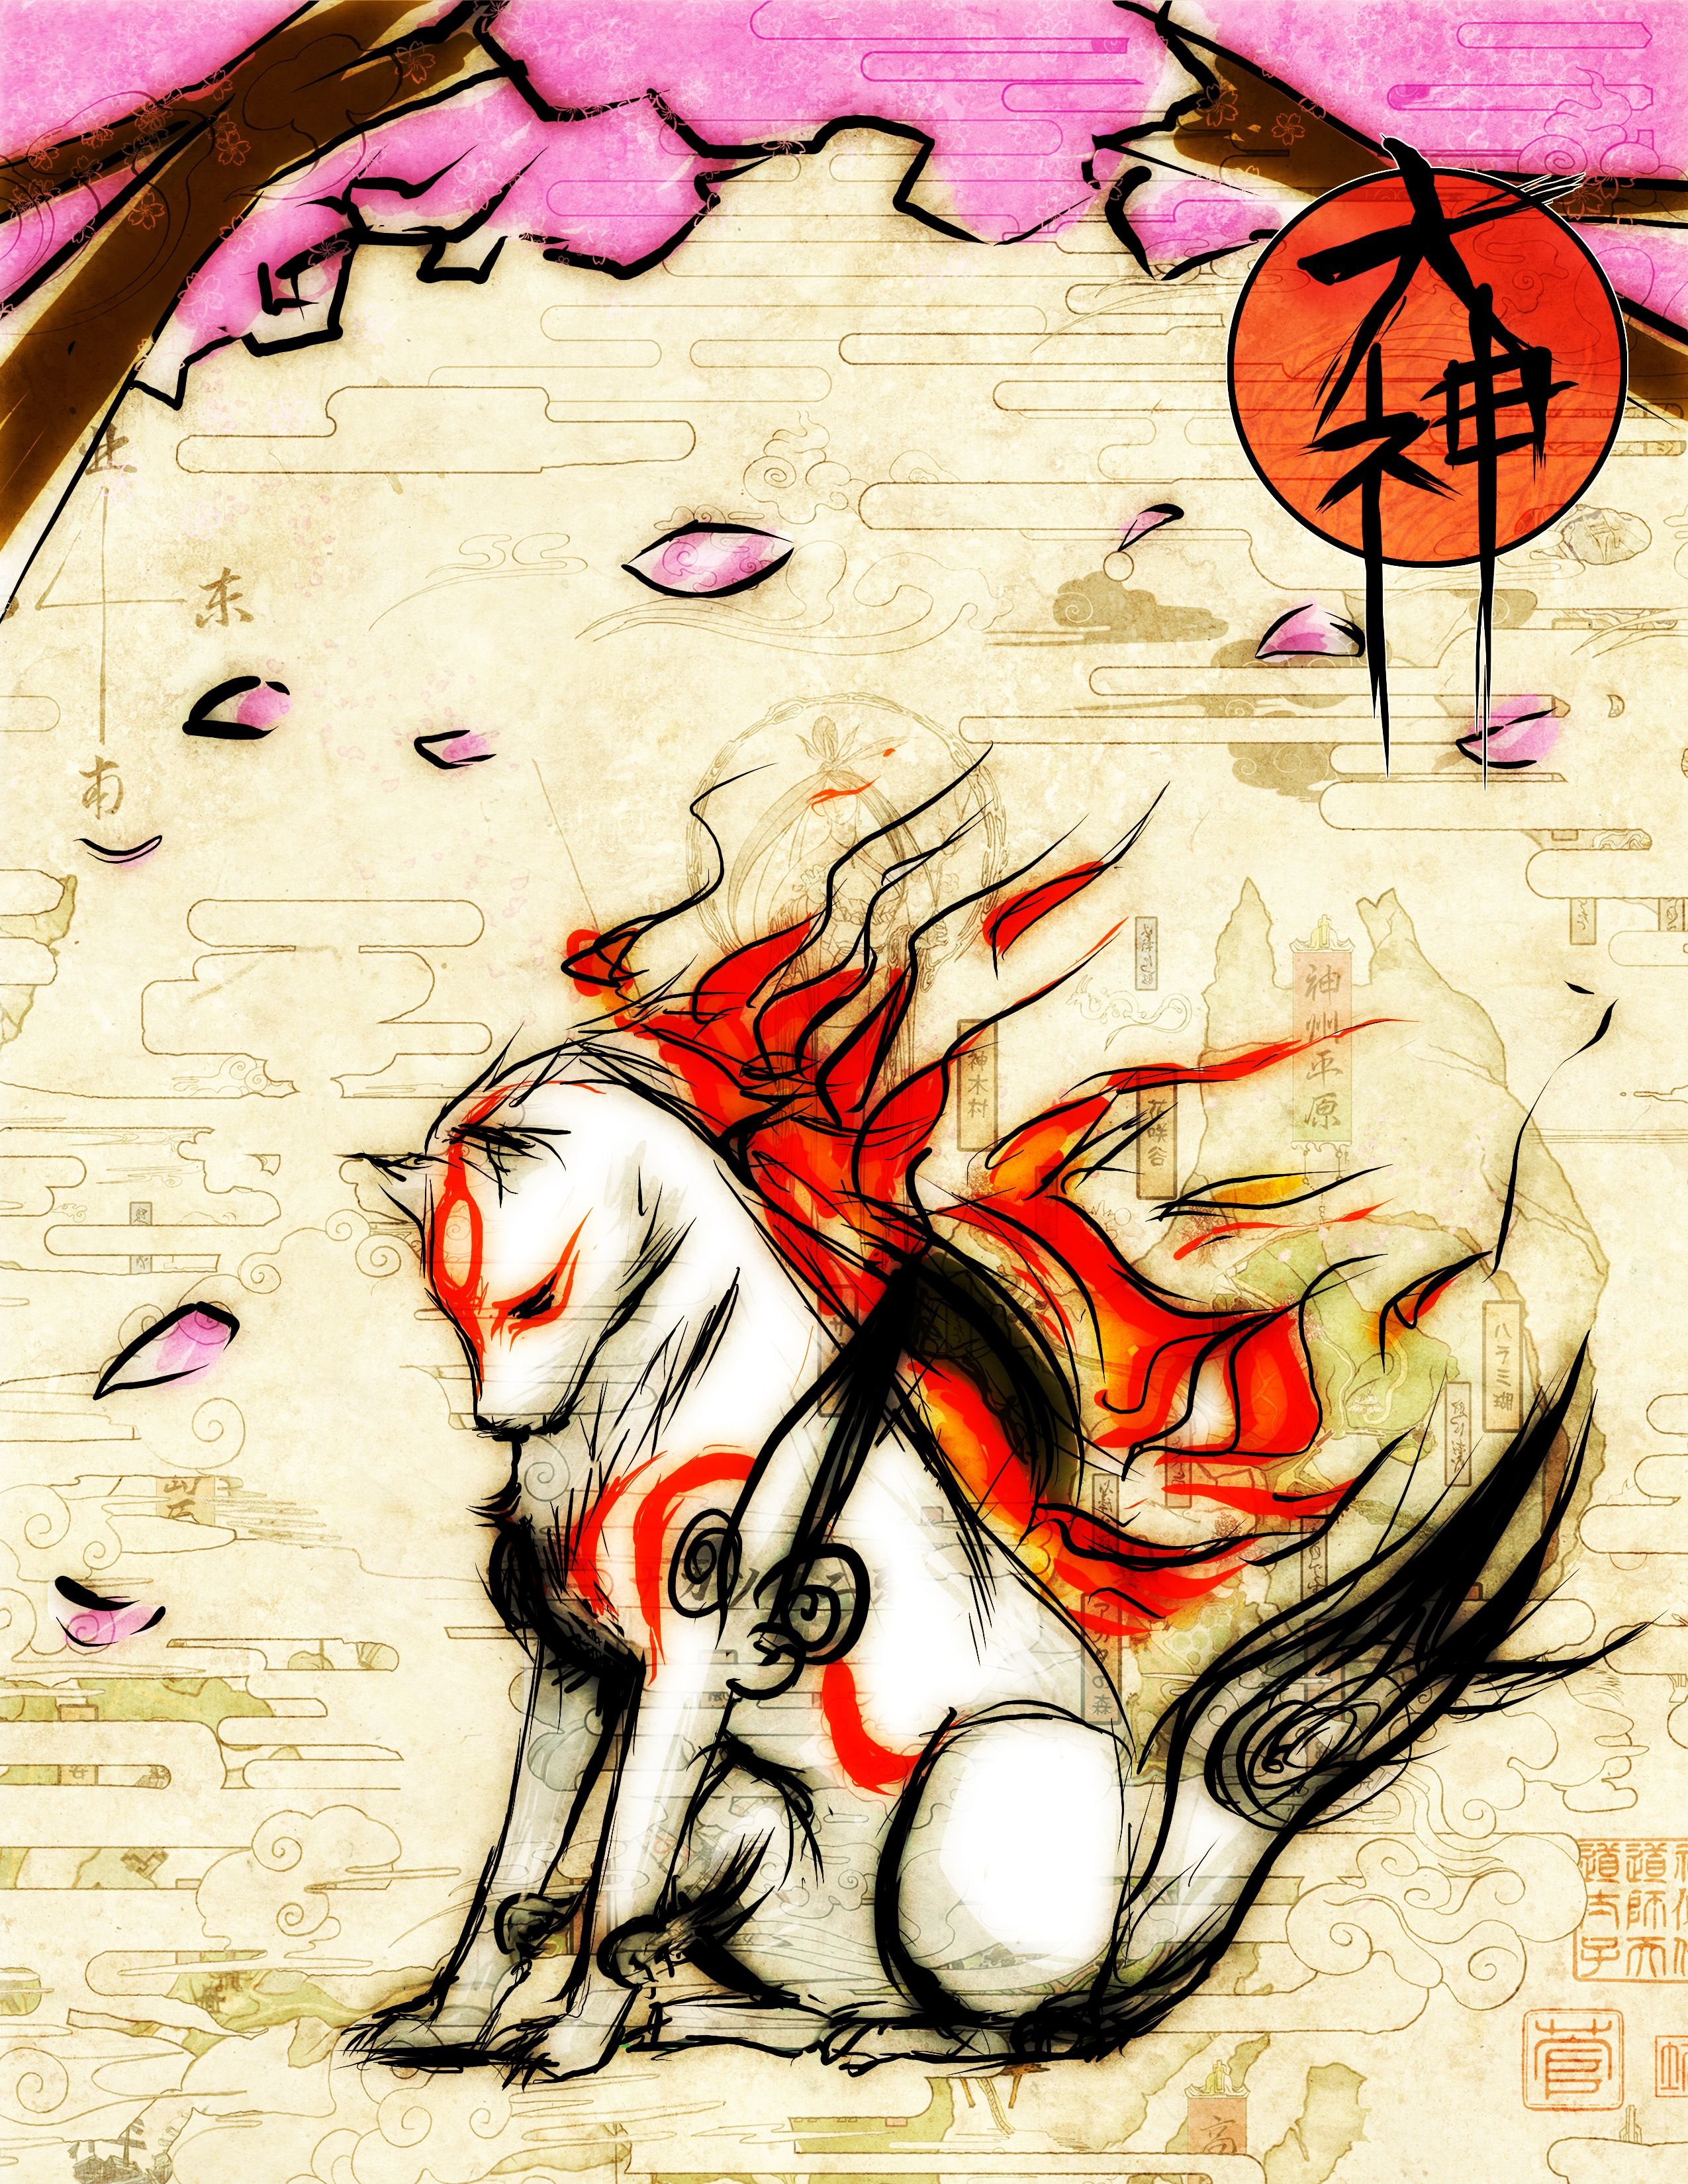 Okami The Nerd In Me Loves This Game So Much Okami Amaterasu Art